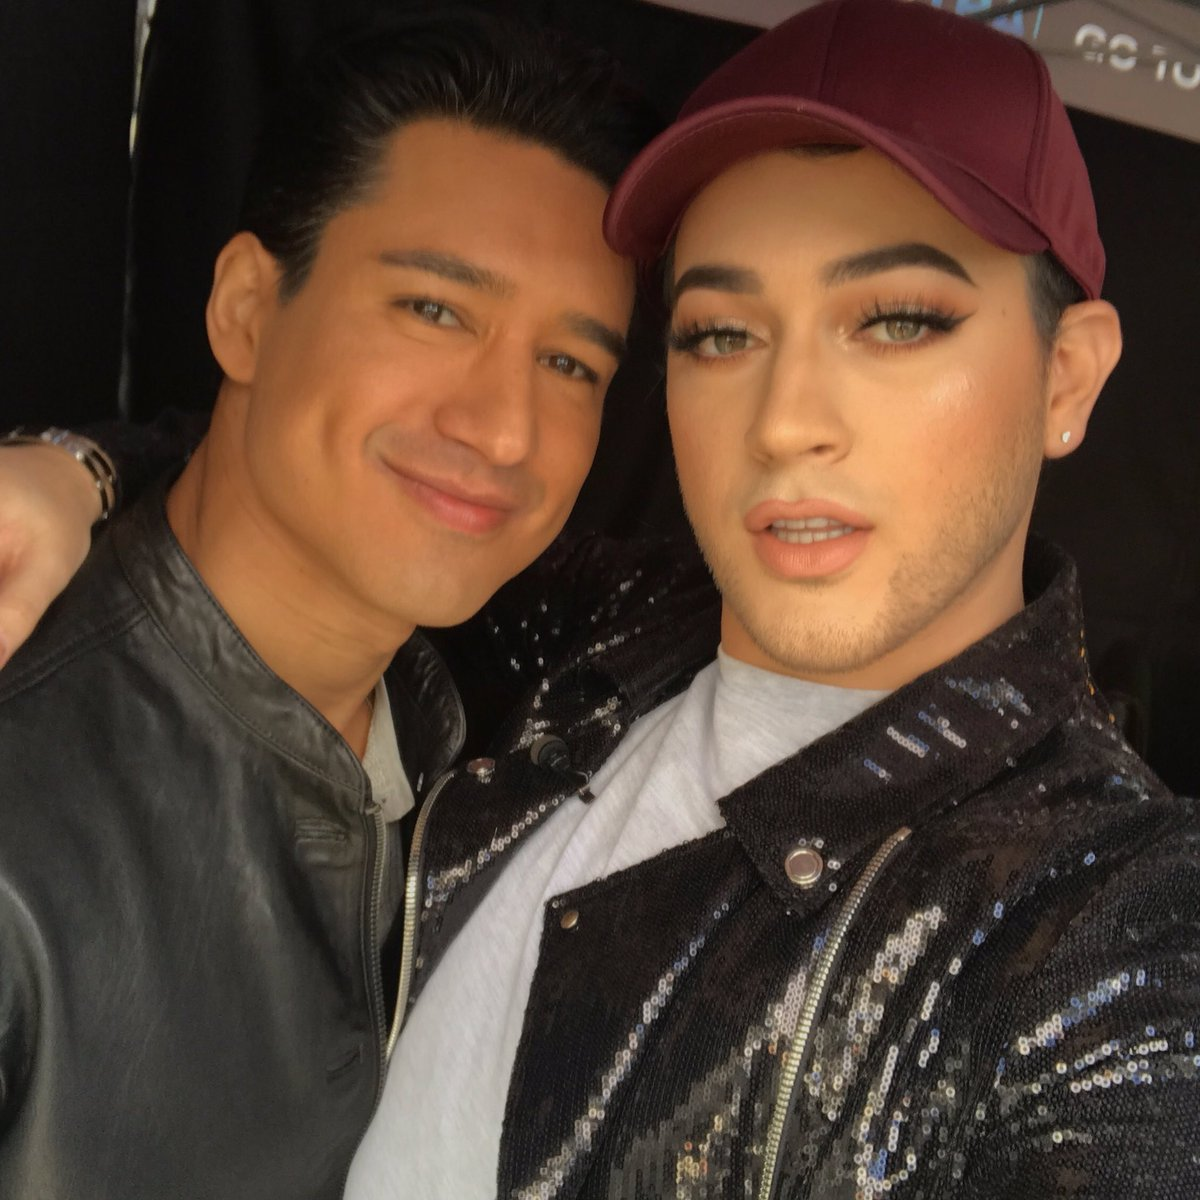 Mario Lopez On Twitter Chula Vista In The House Mannymua733